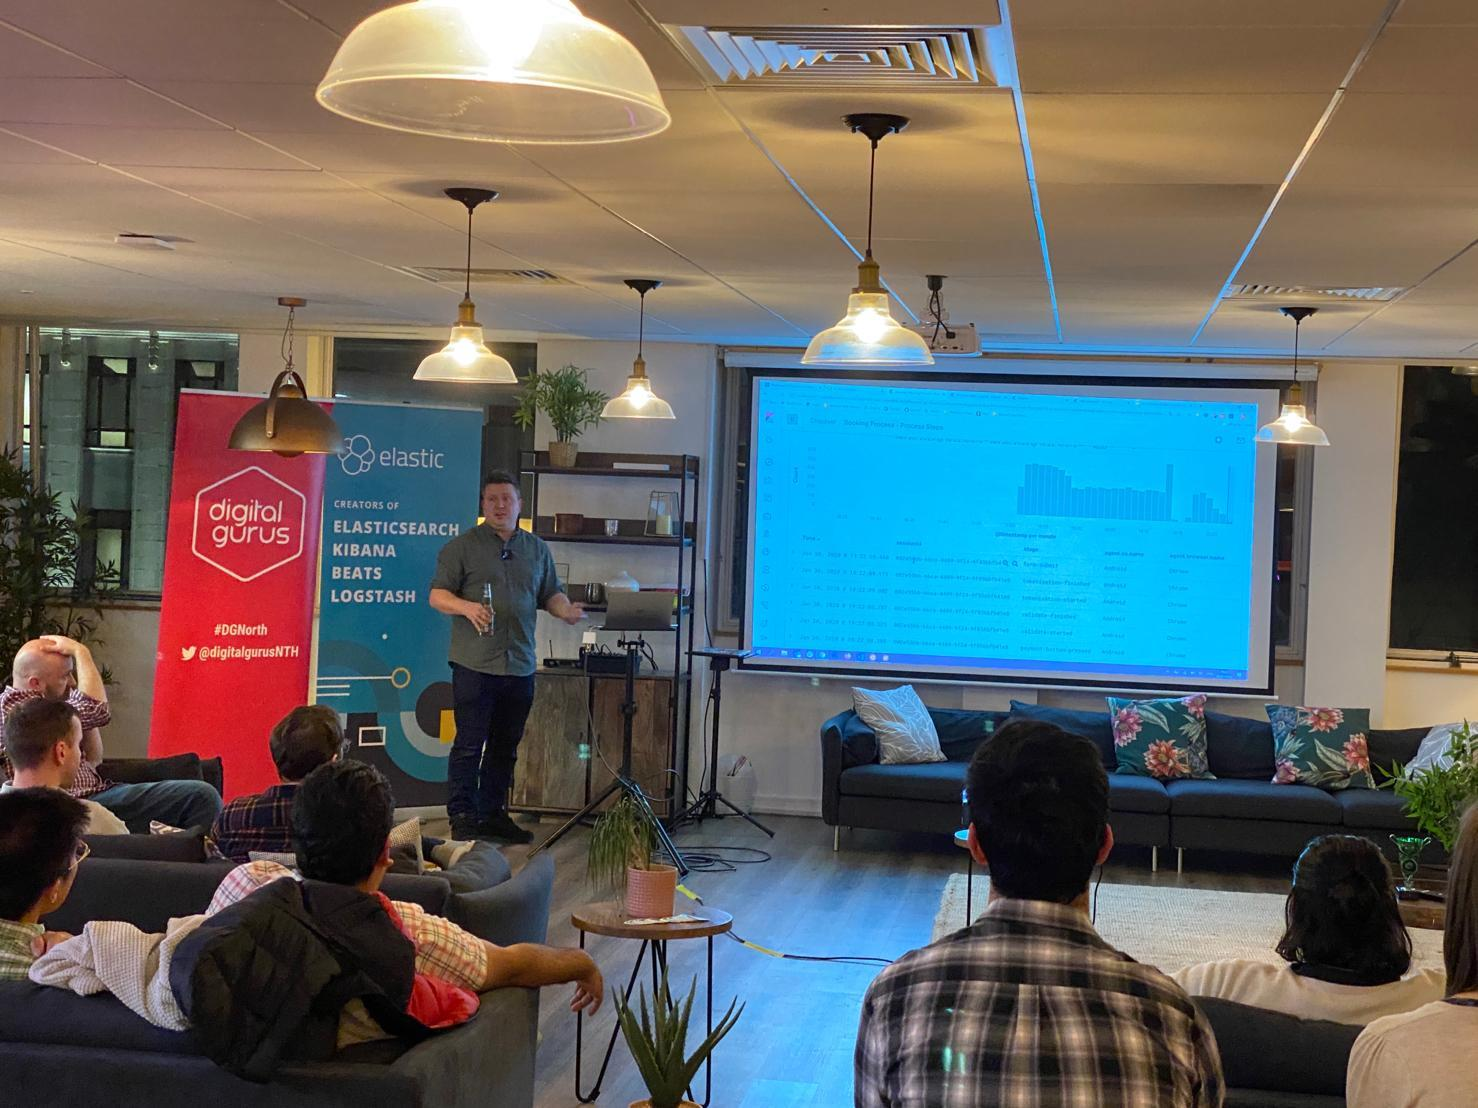 Elasticsearch Manchester Meetup talk - 30 Jan 2020 - Entity Centric Indexing with Elasticsearch Transforms